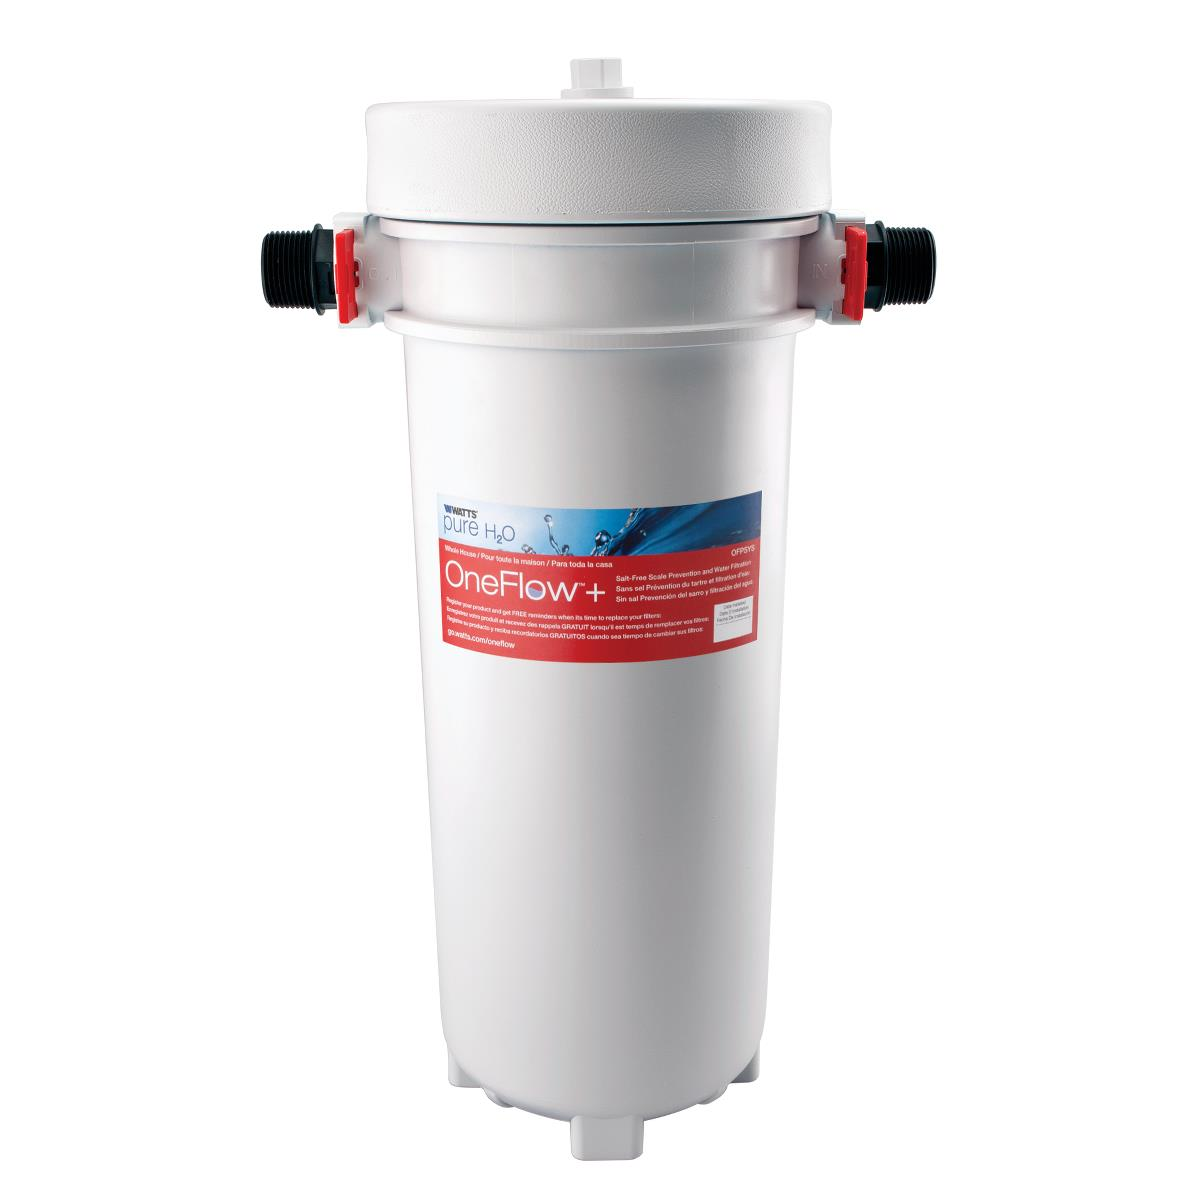 Watts Oneflow And Salt-free Scale Prevention And Water Filtration